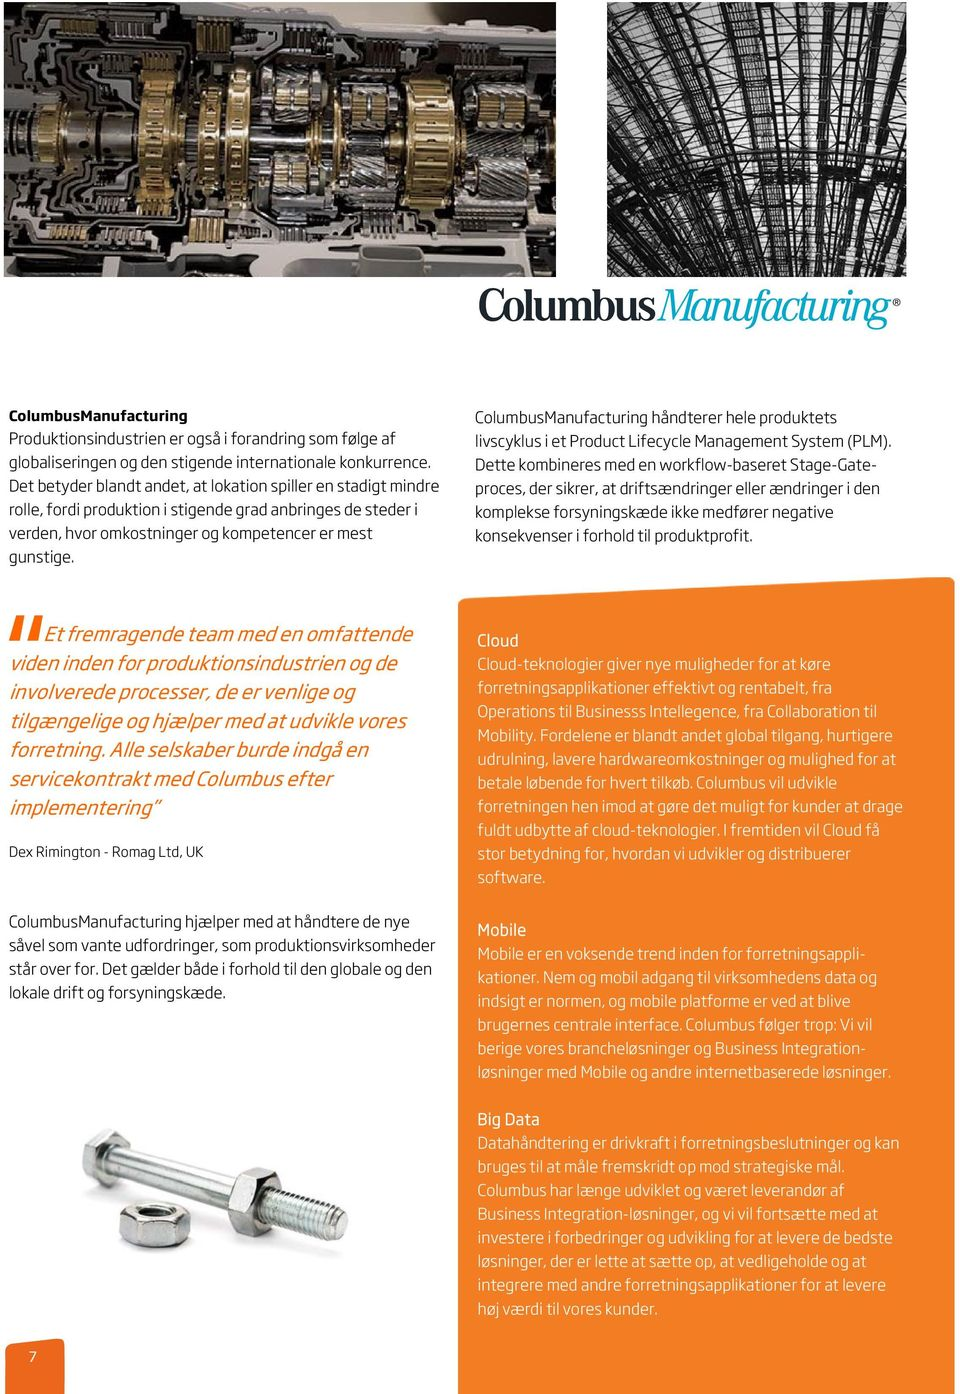 ColumbusManufacturing håndterer hele produktets livscyklus i et Product Lifecycle Management System (PLM).